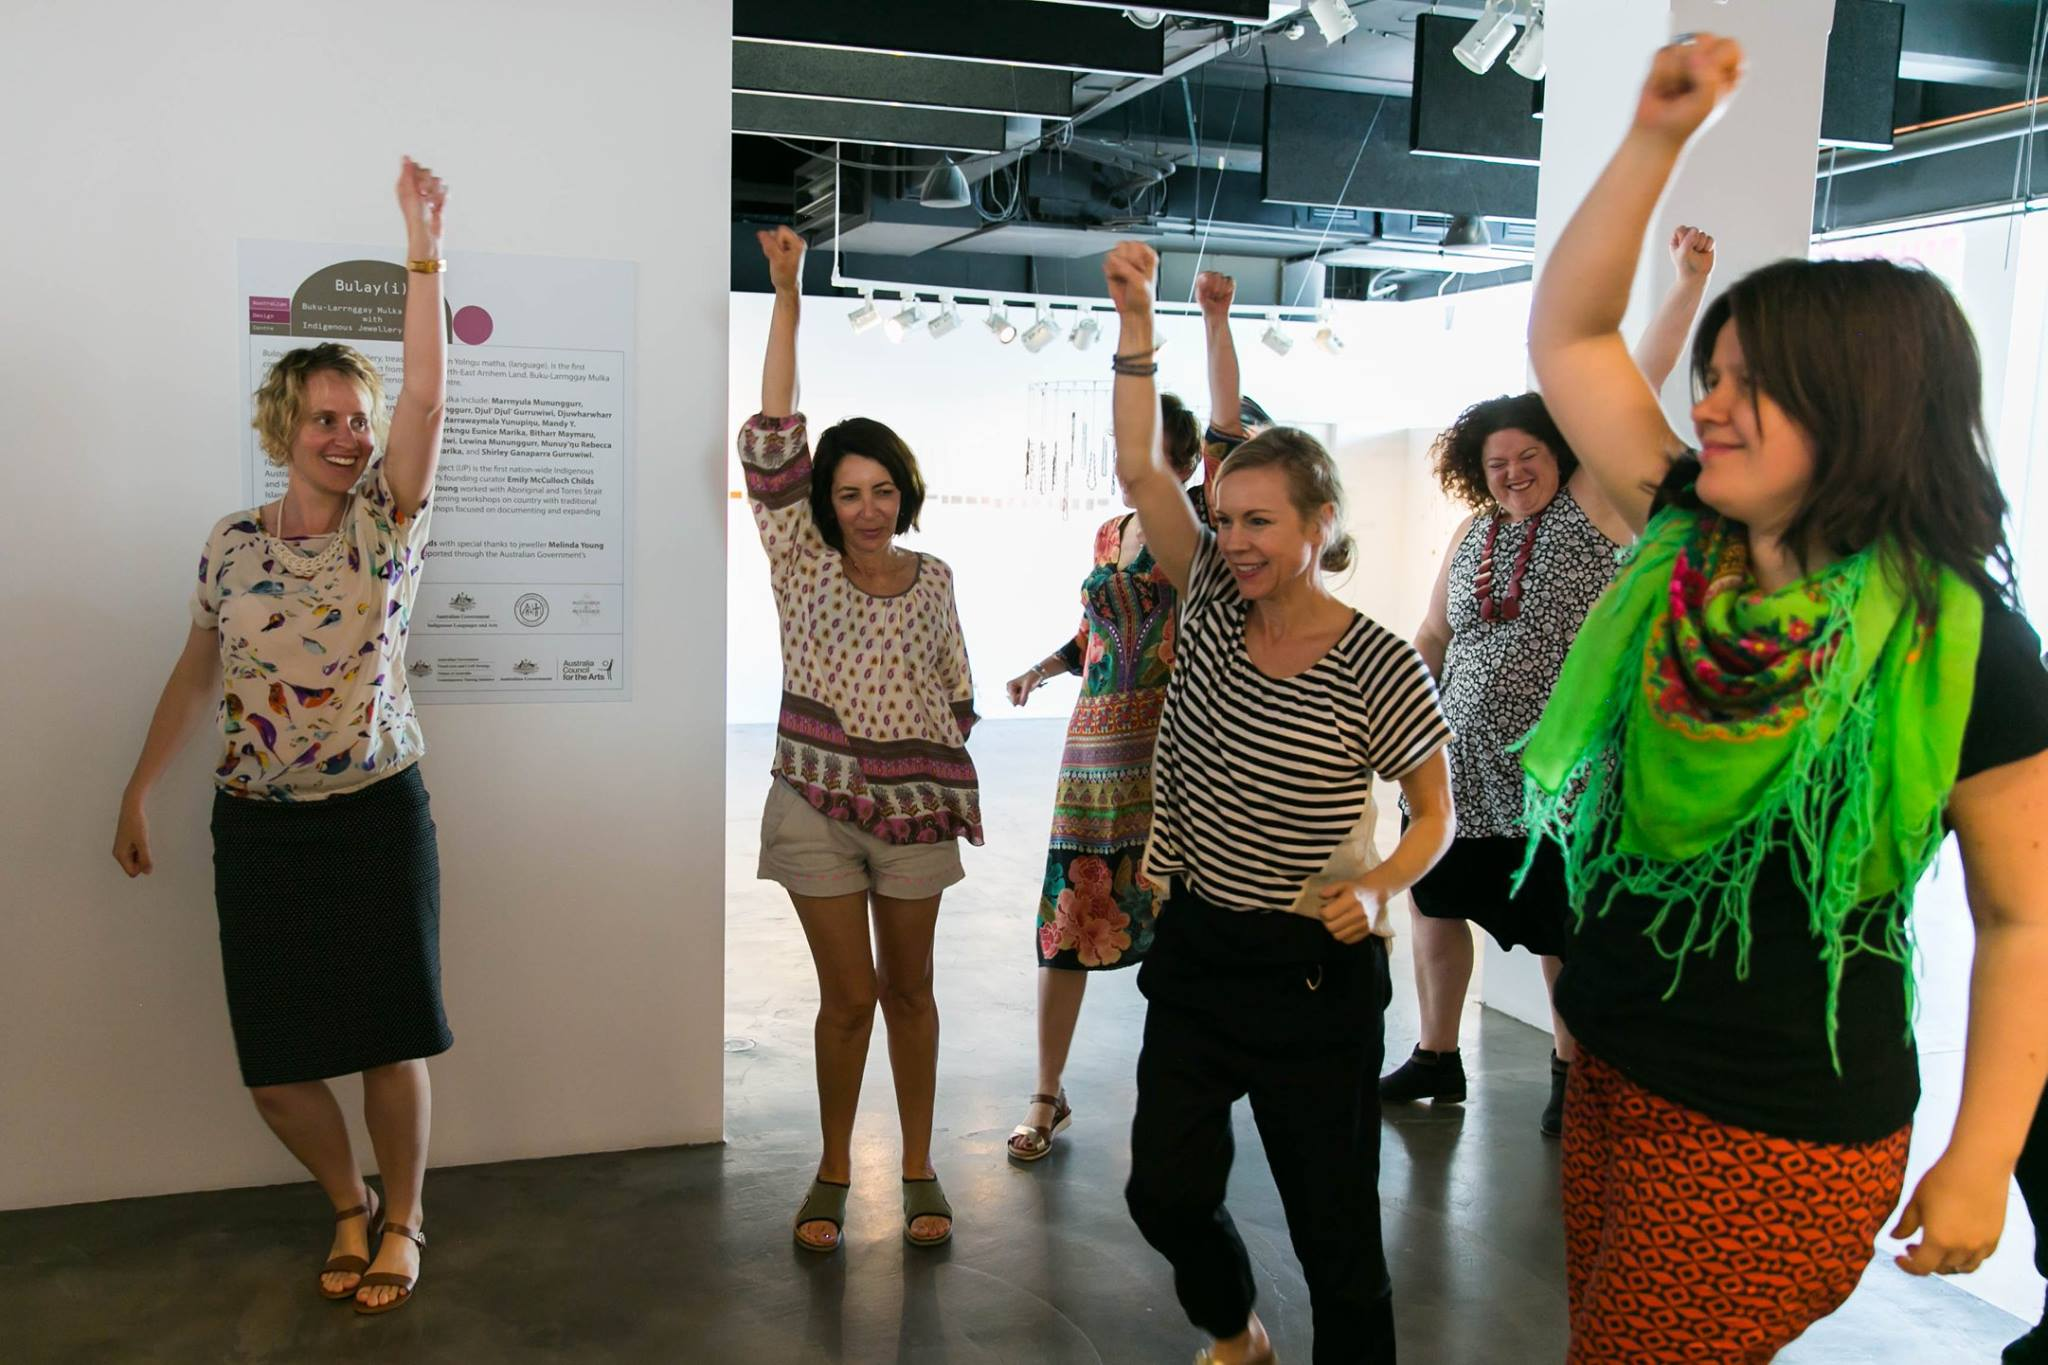 Dancing it out with the beat of Whitney Houston and the warm energy of Lizzy Williamson founder & author of Two Minute Moves, at our Creative Mama Workshop in support of PANDA Awareness Week.